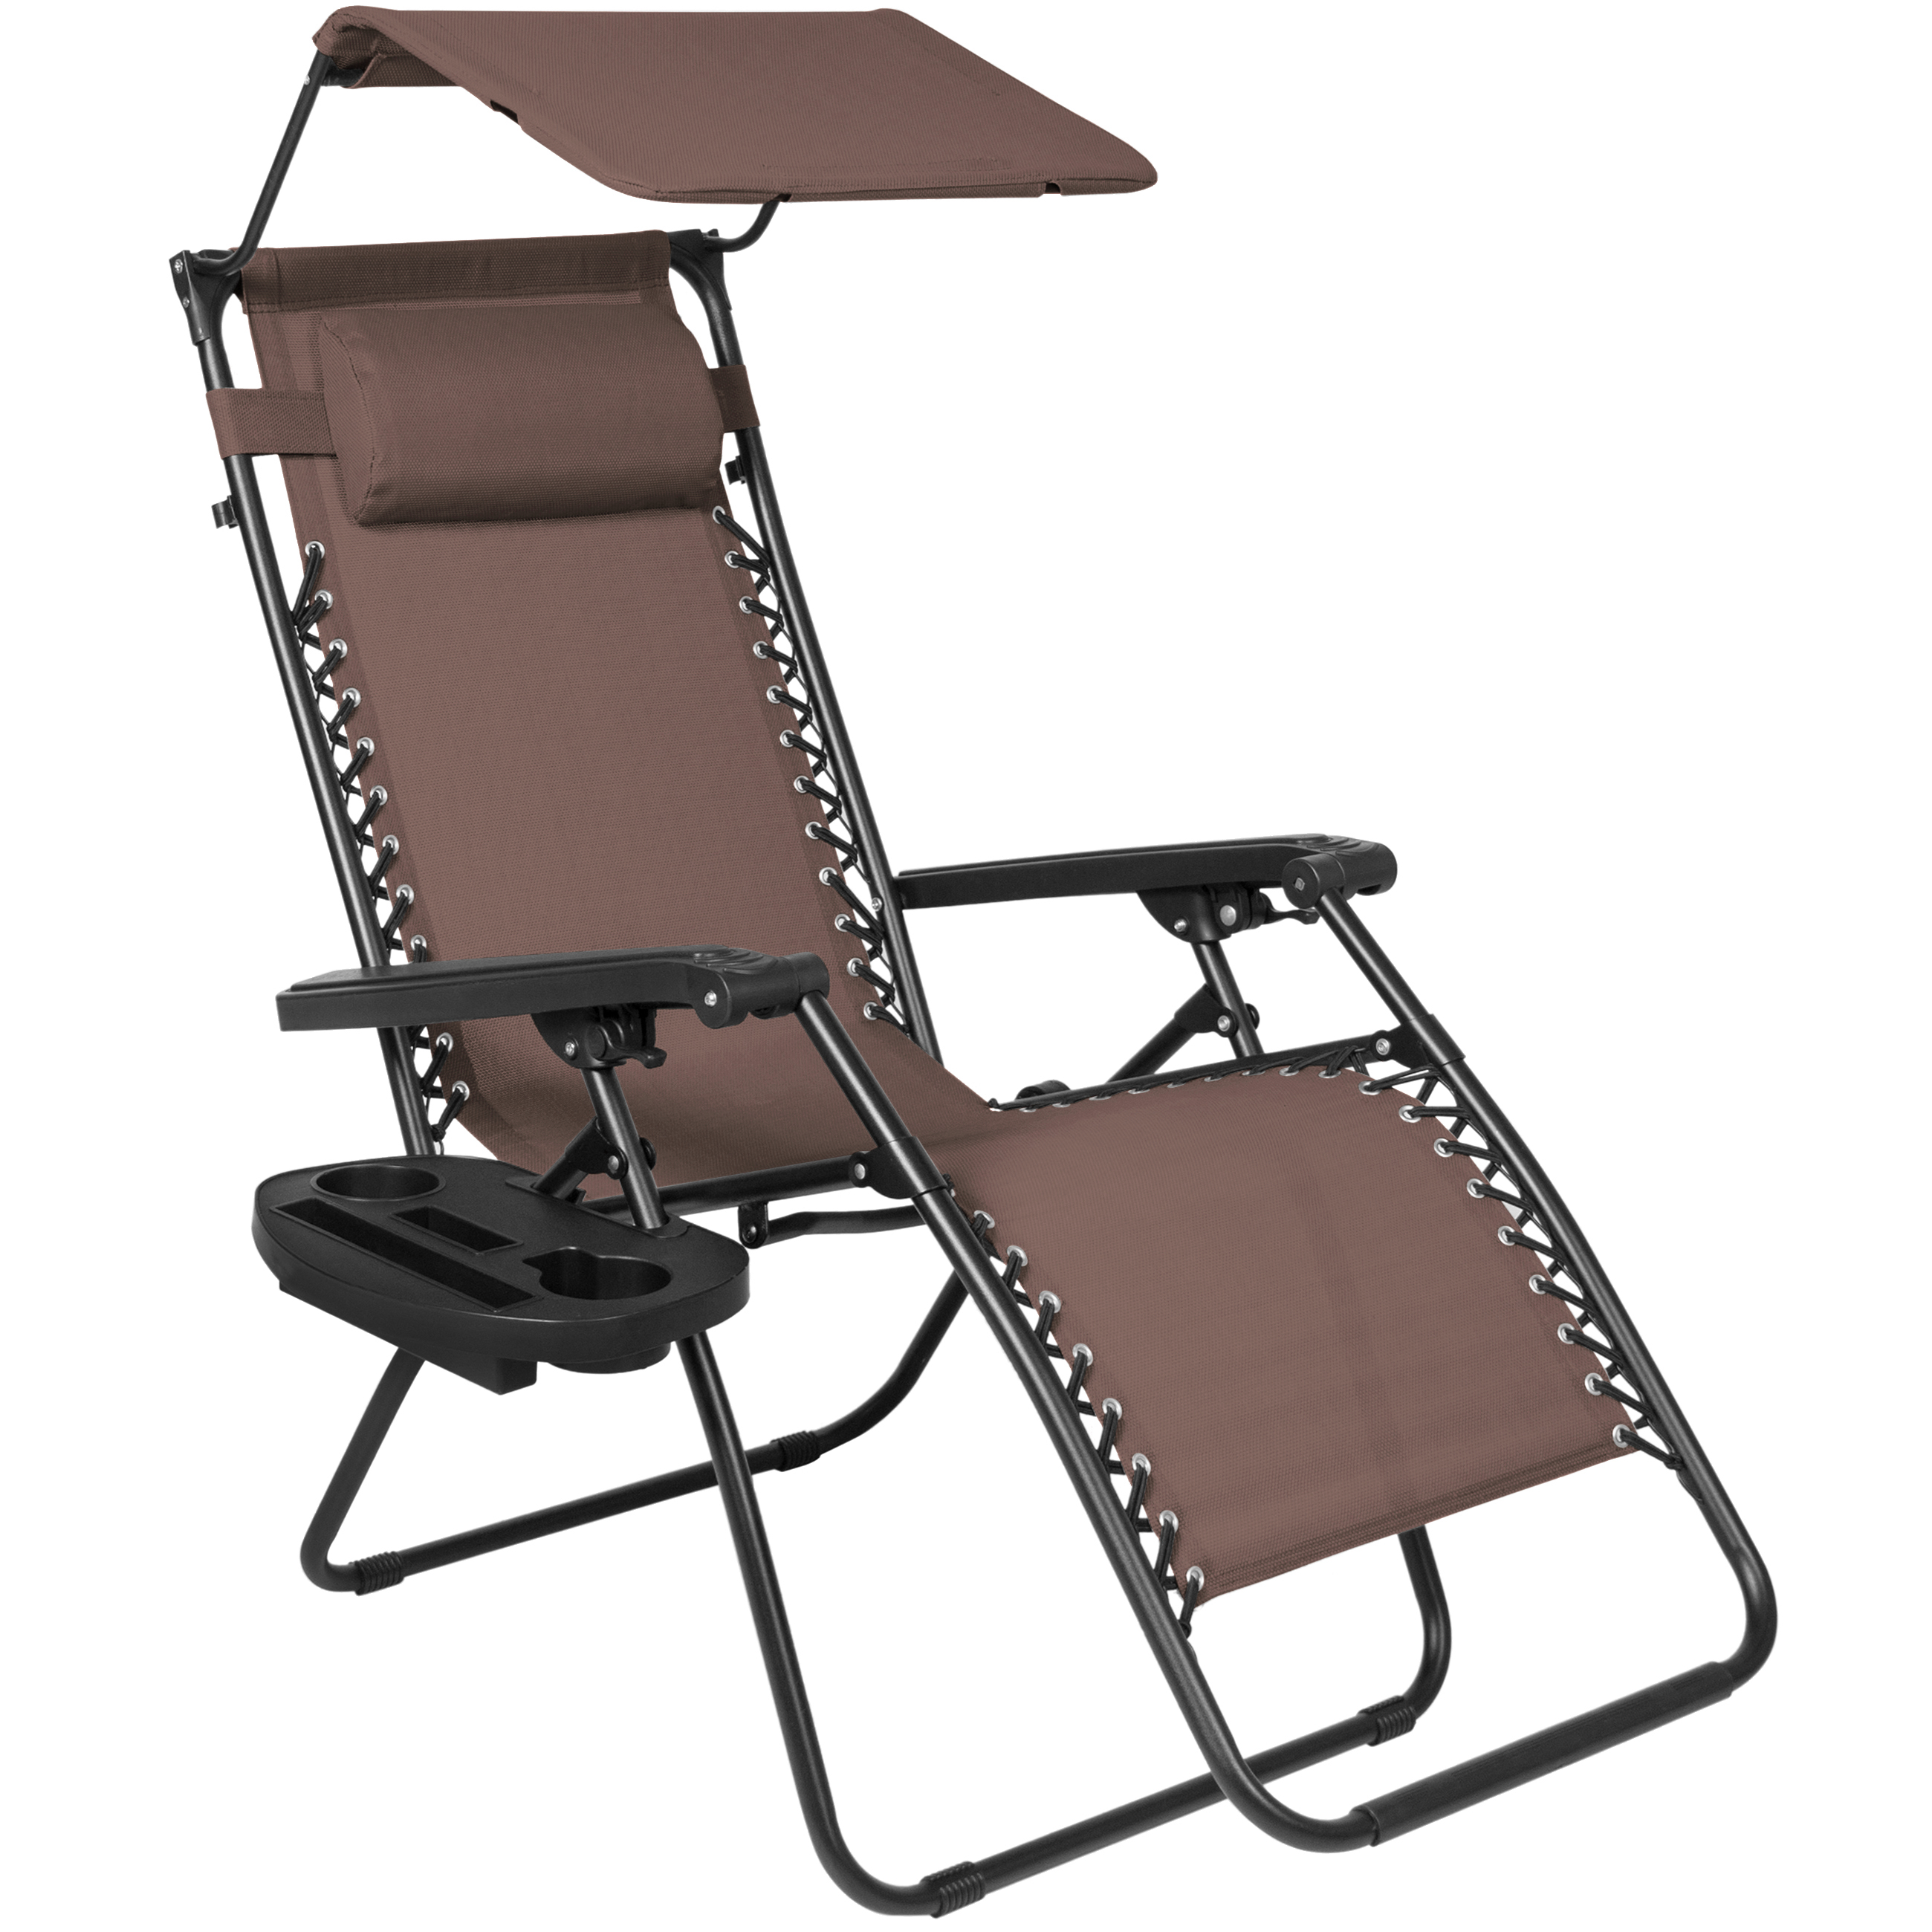 decoration home deluxe zero gallery foldable gravity bliss with hammocks best hammock sunshade chair rocking